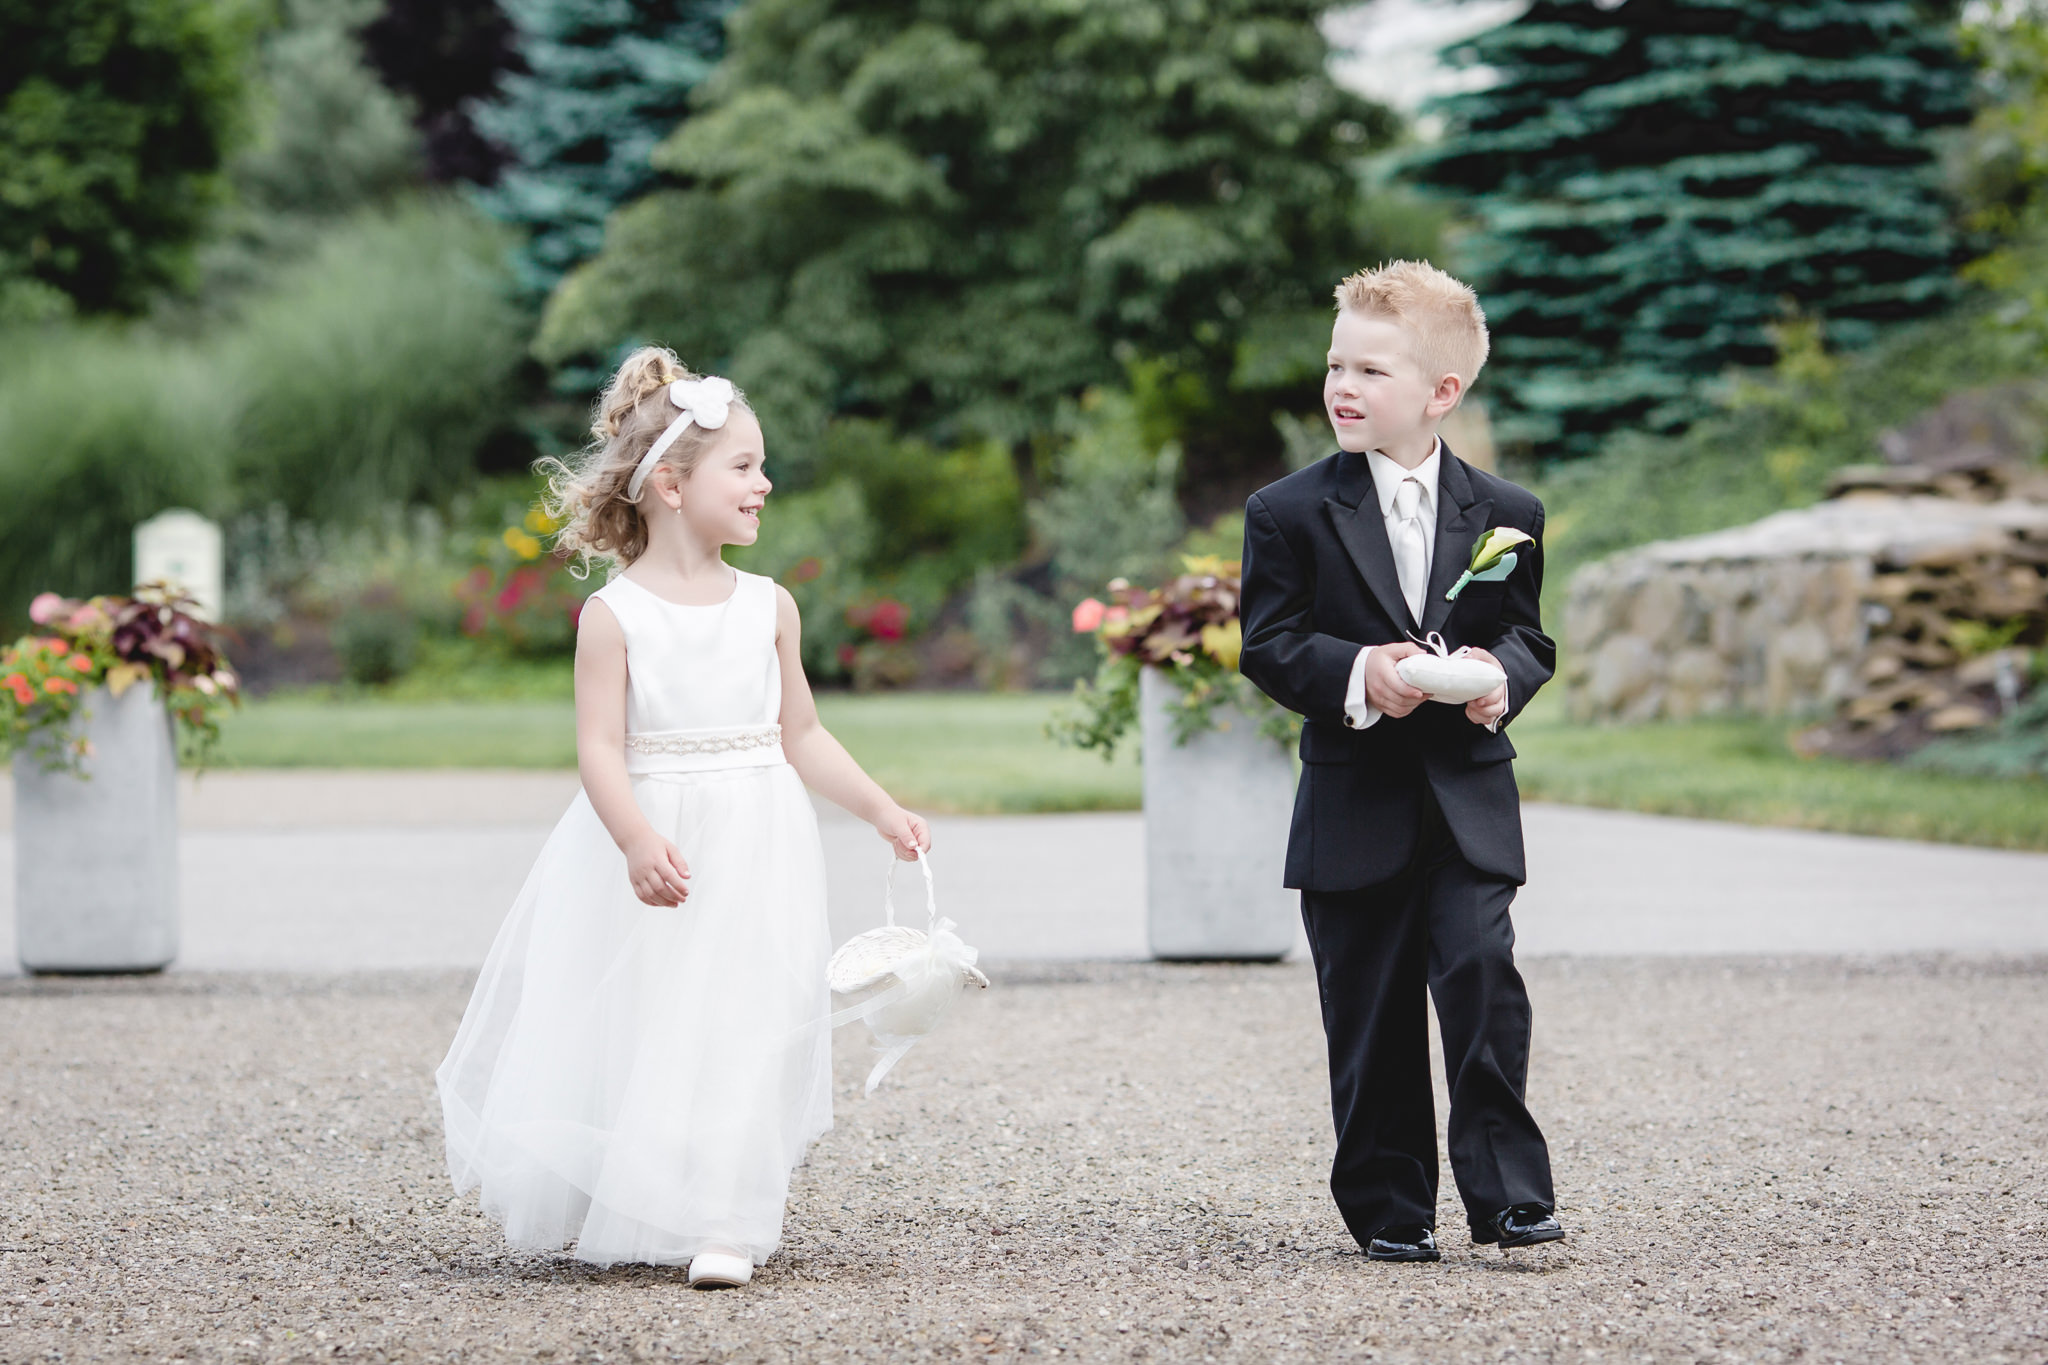 Flower girl and ring bearer walking down the aisle at Greystone Fields